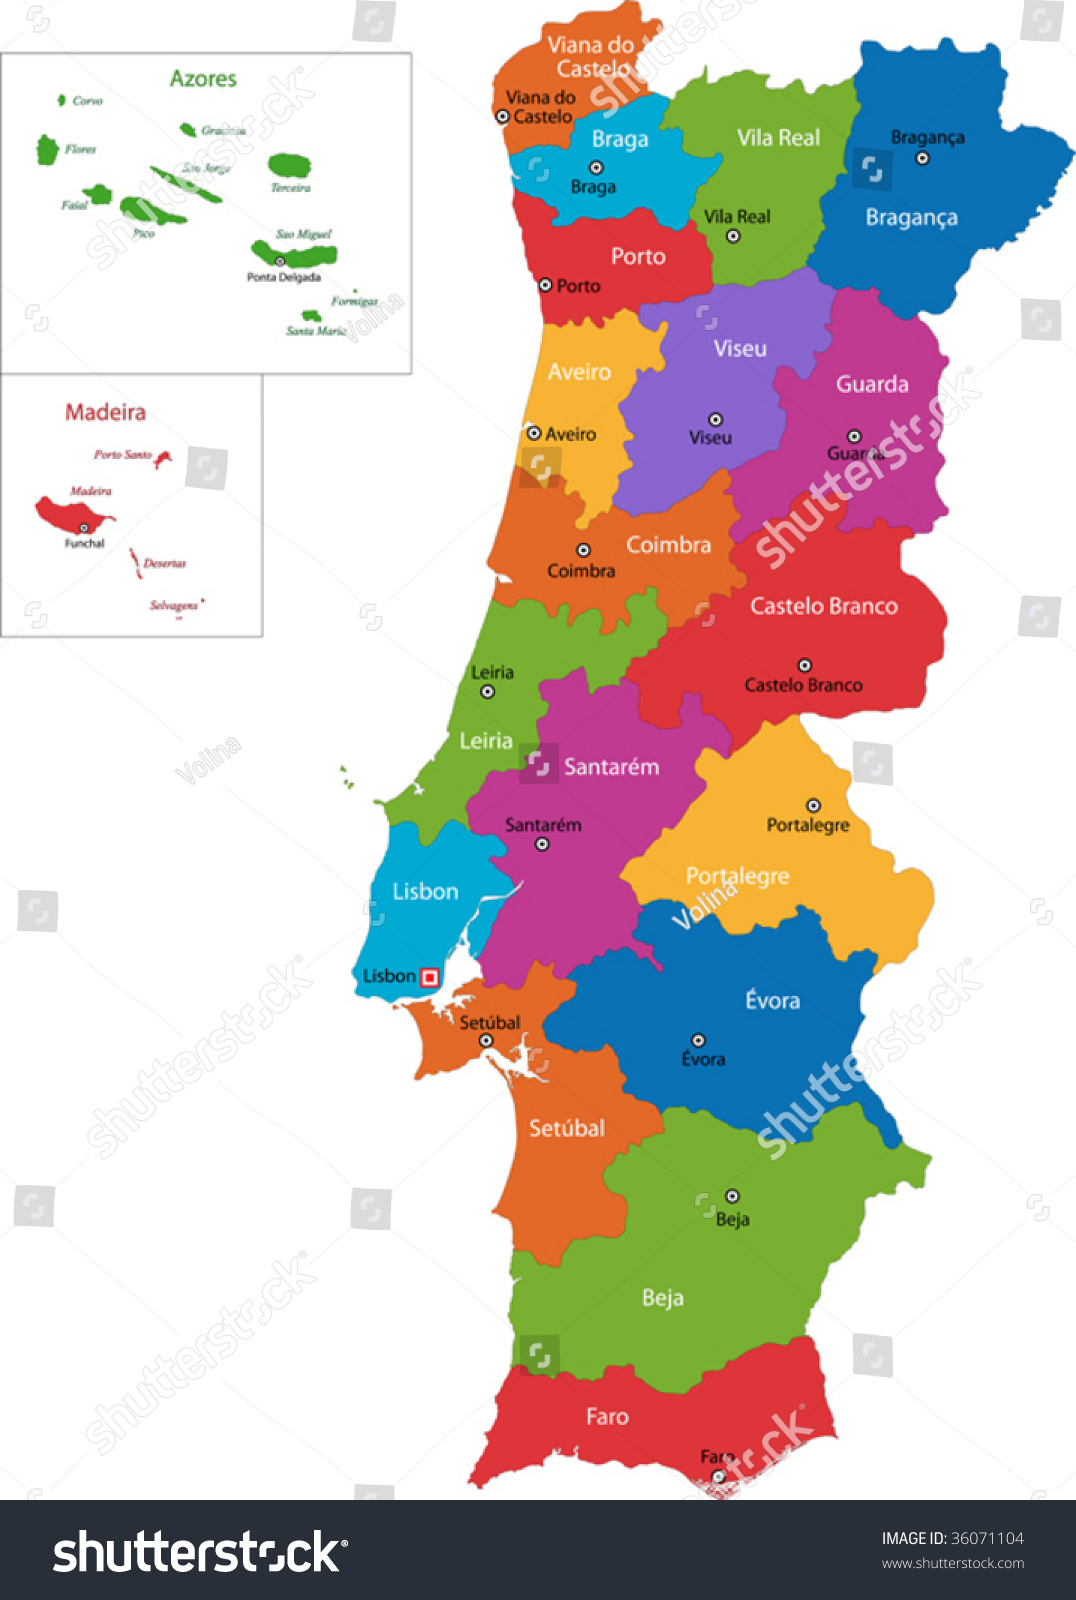 Royaltyfree Colorful Portugal Map With Regions And - Portugal map braga